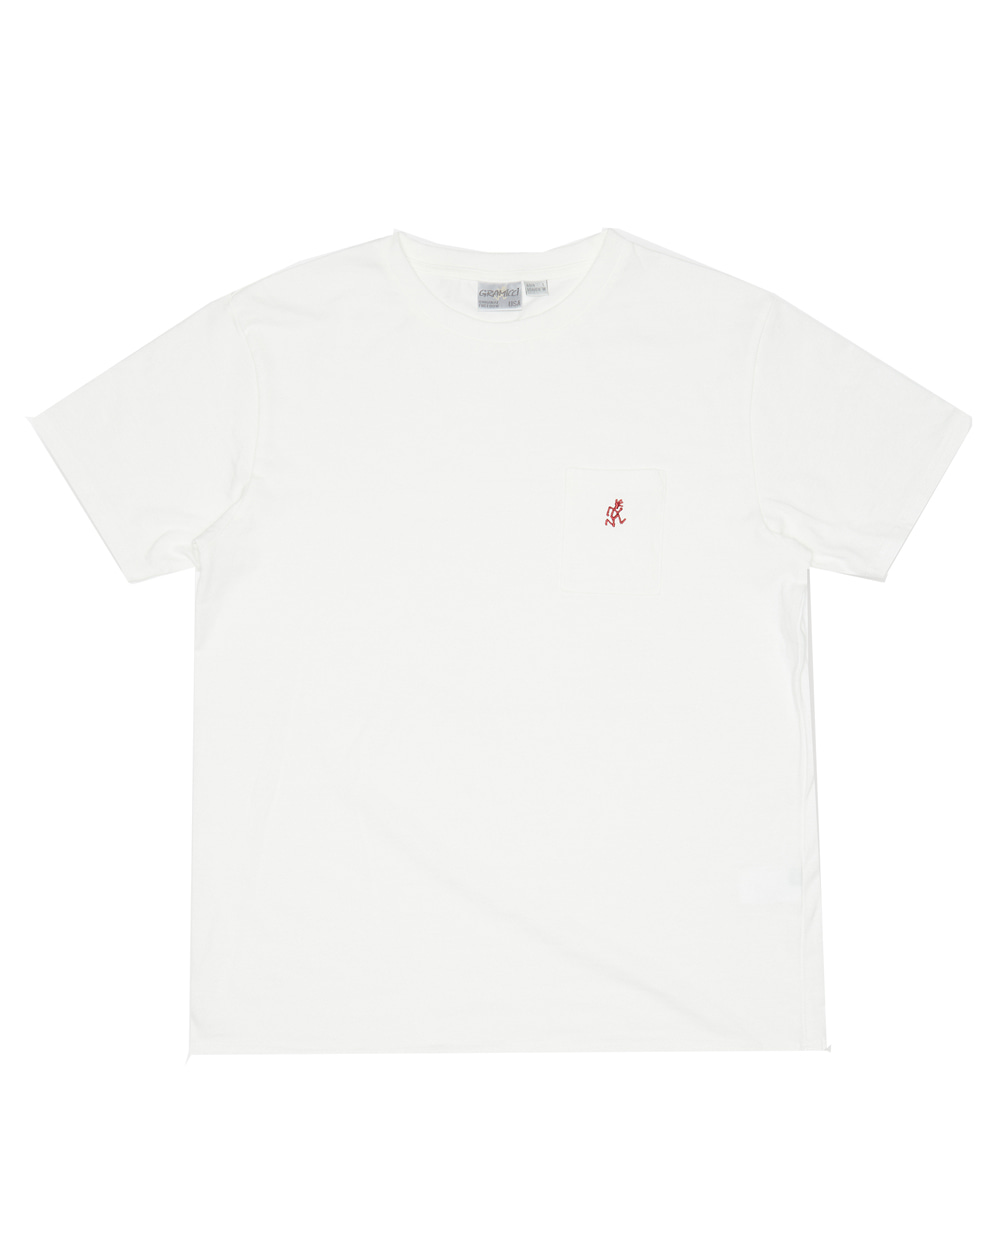 그라미치 ONE POINT TEE (White)